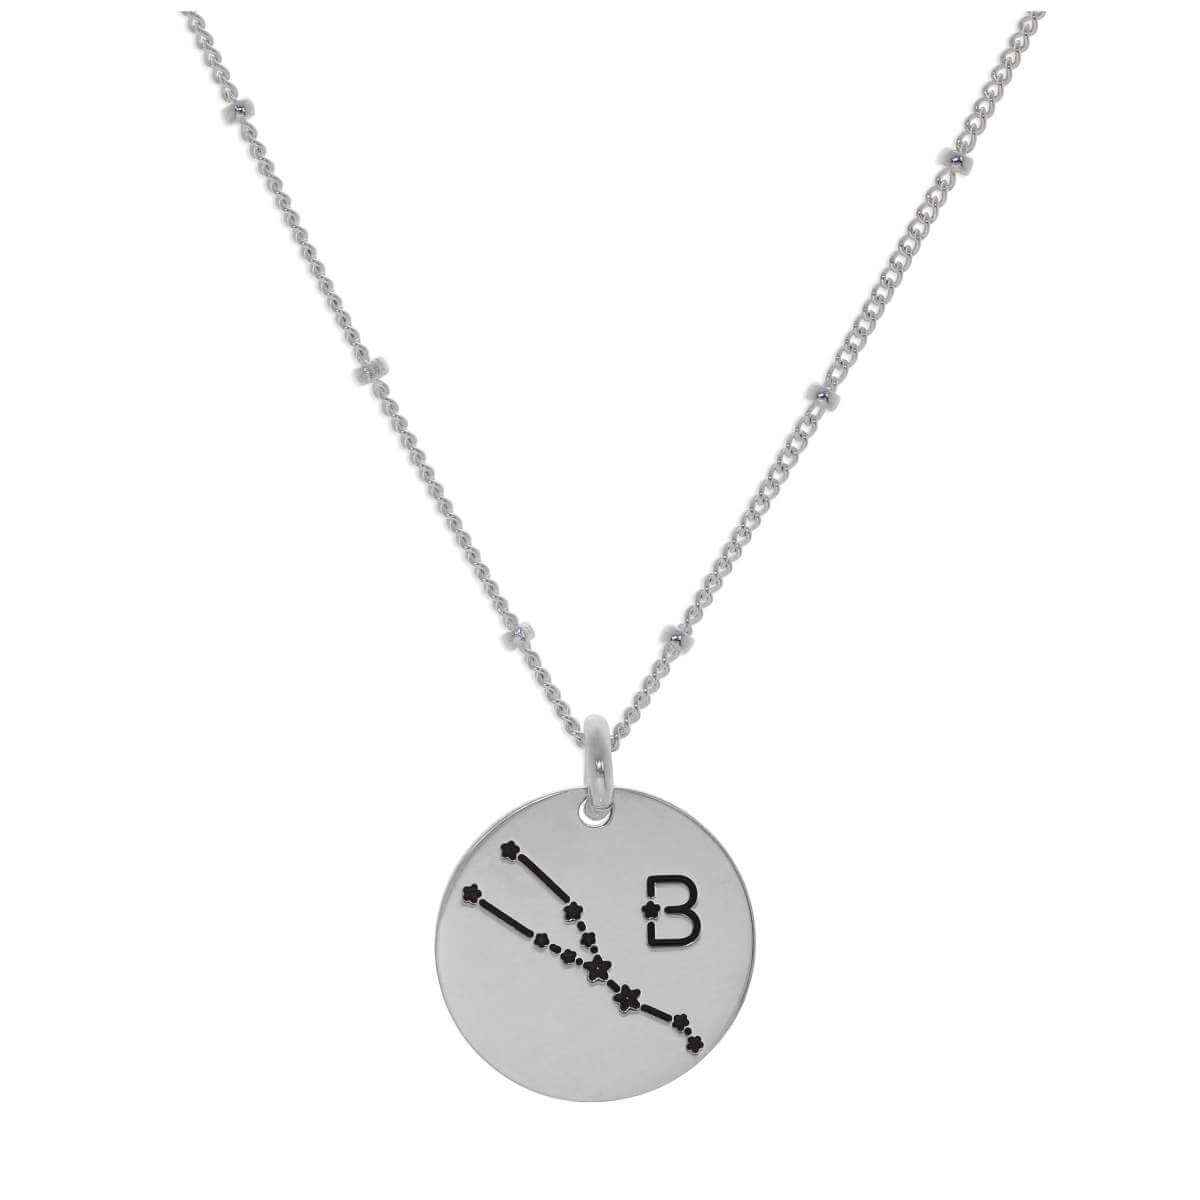 Bespoke Sterling Silver Taurus Constellation & Initial Necklace 12-24 Inch